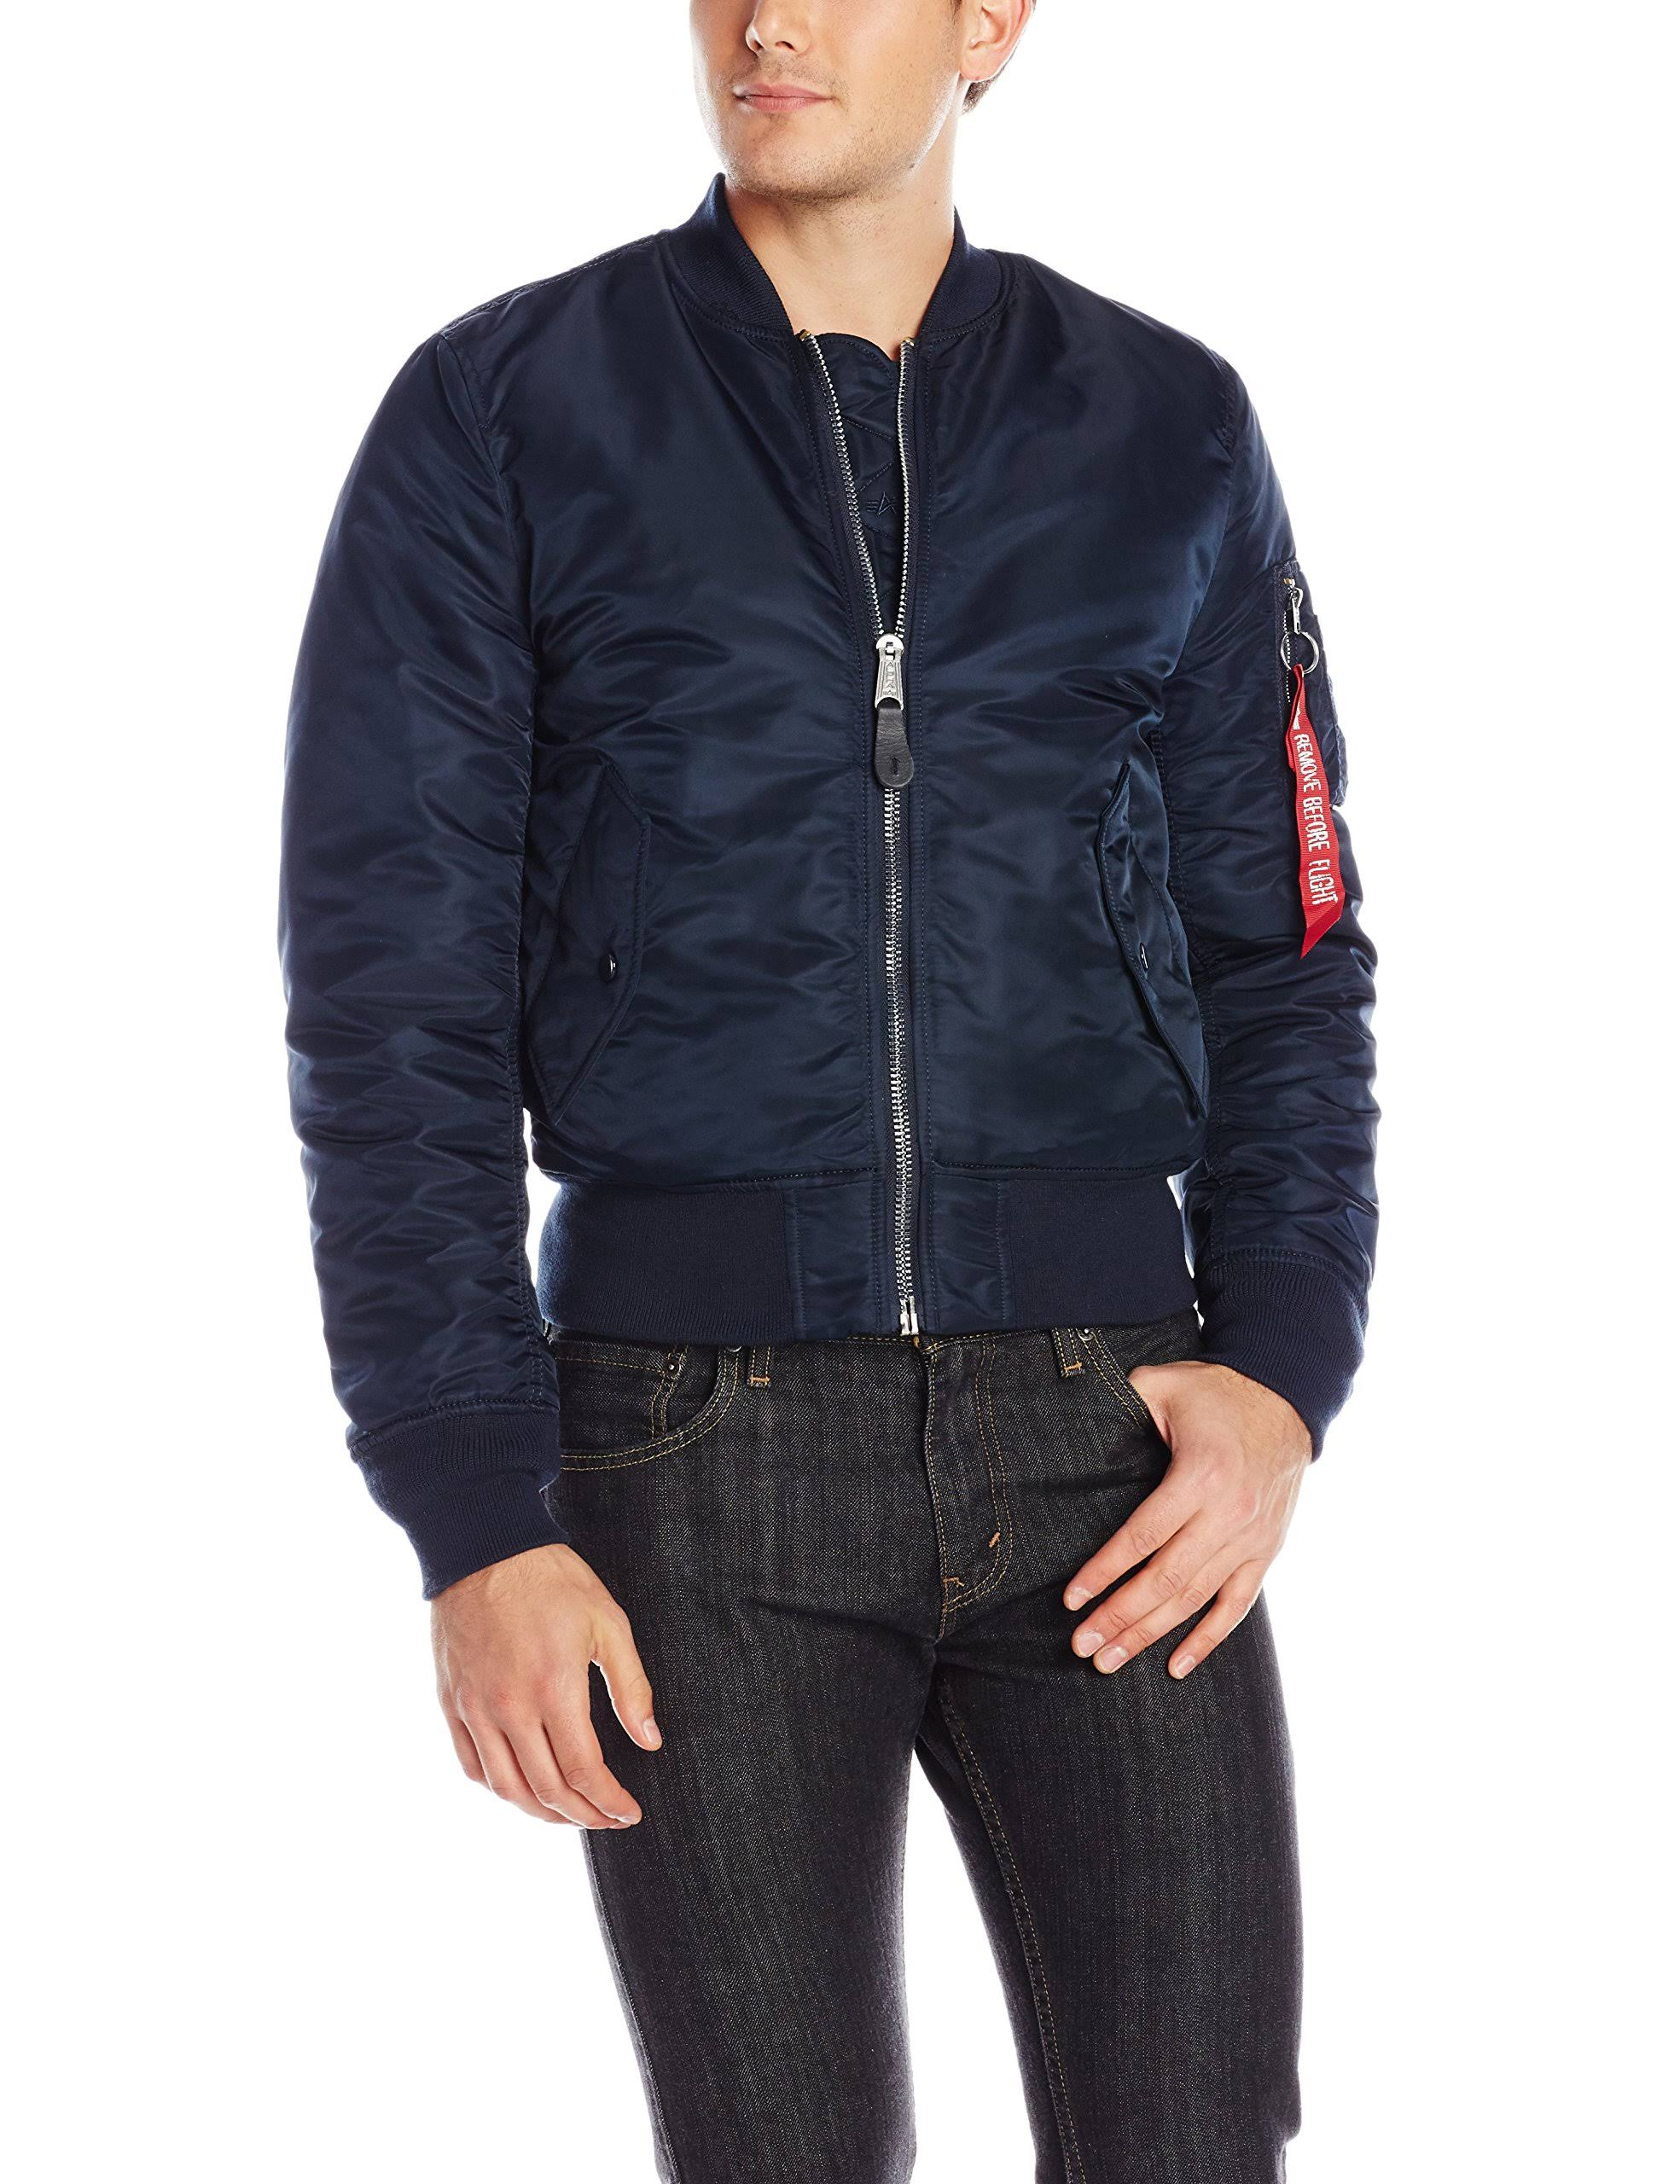 Jacket Industries Flight Azul Fit Ma Bomber Replica Alpha 1 Slim Zfxd0wg0q6